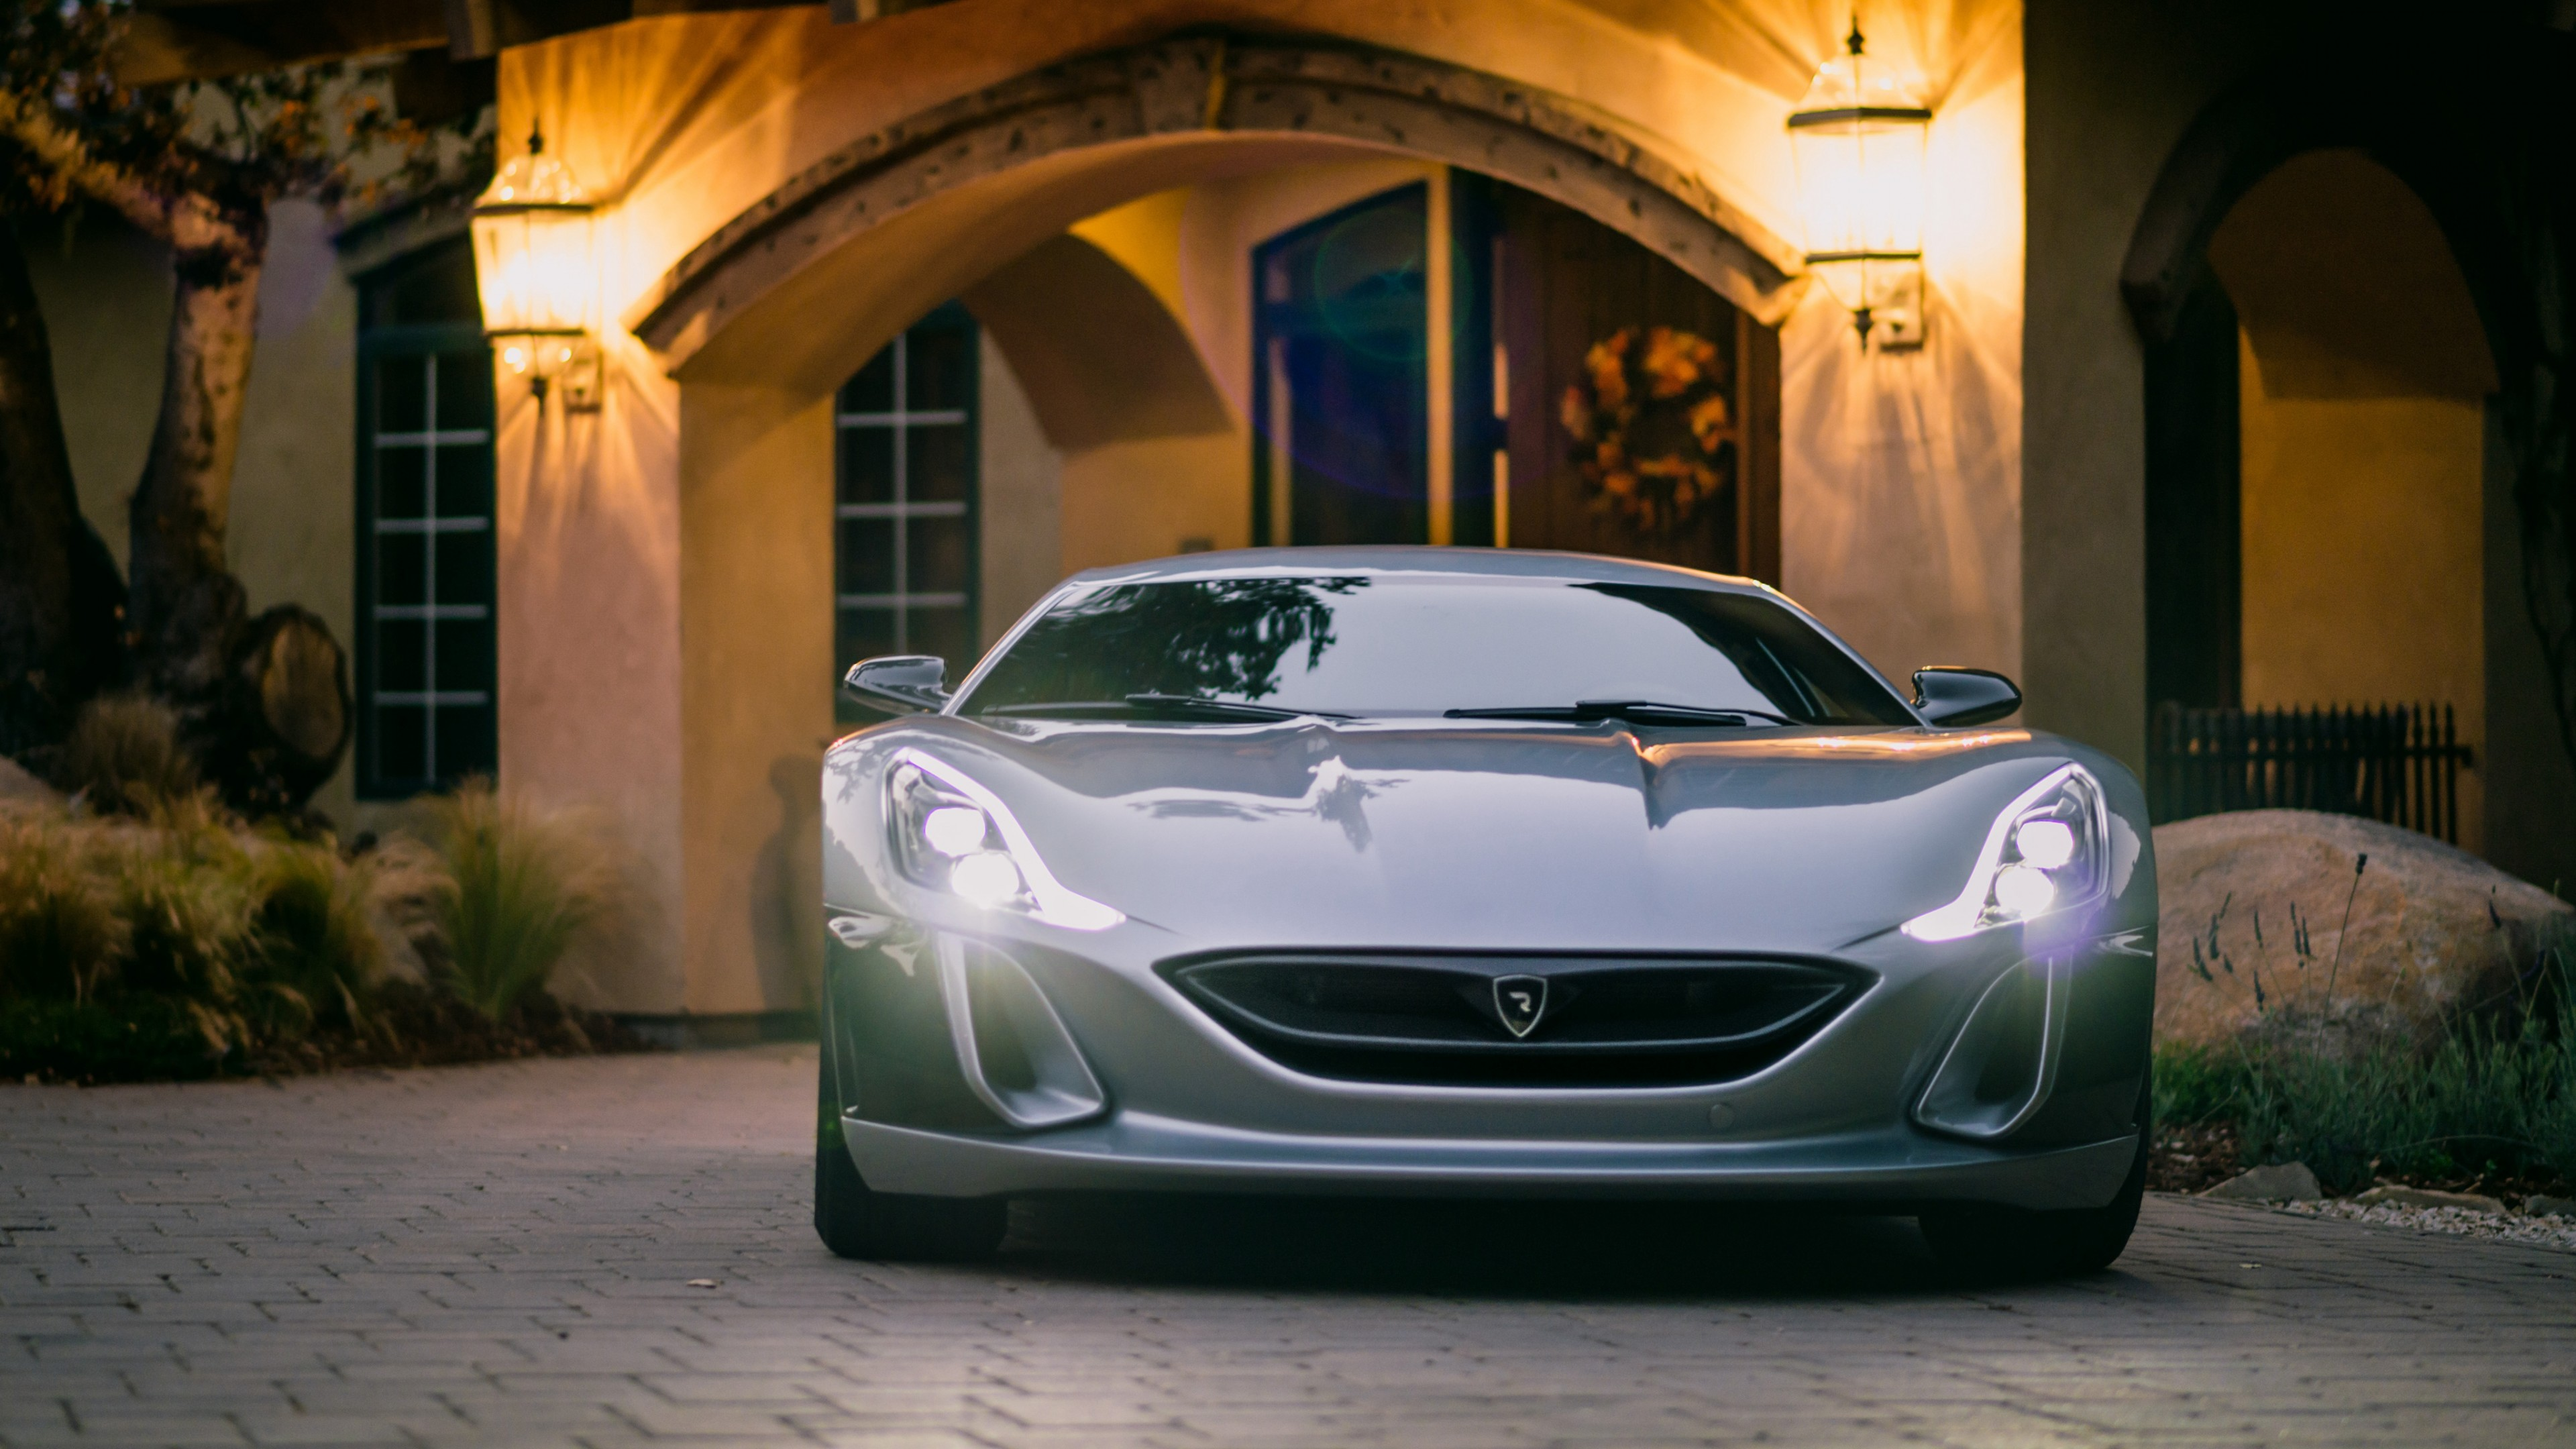 Rimac Concept One 2018 4K Wallpaper | HD Car Wallpapers ...